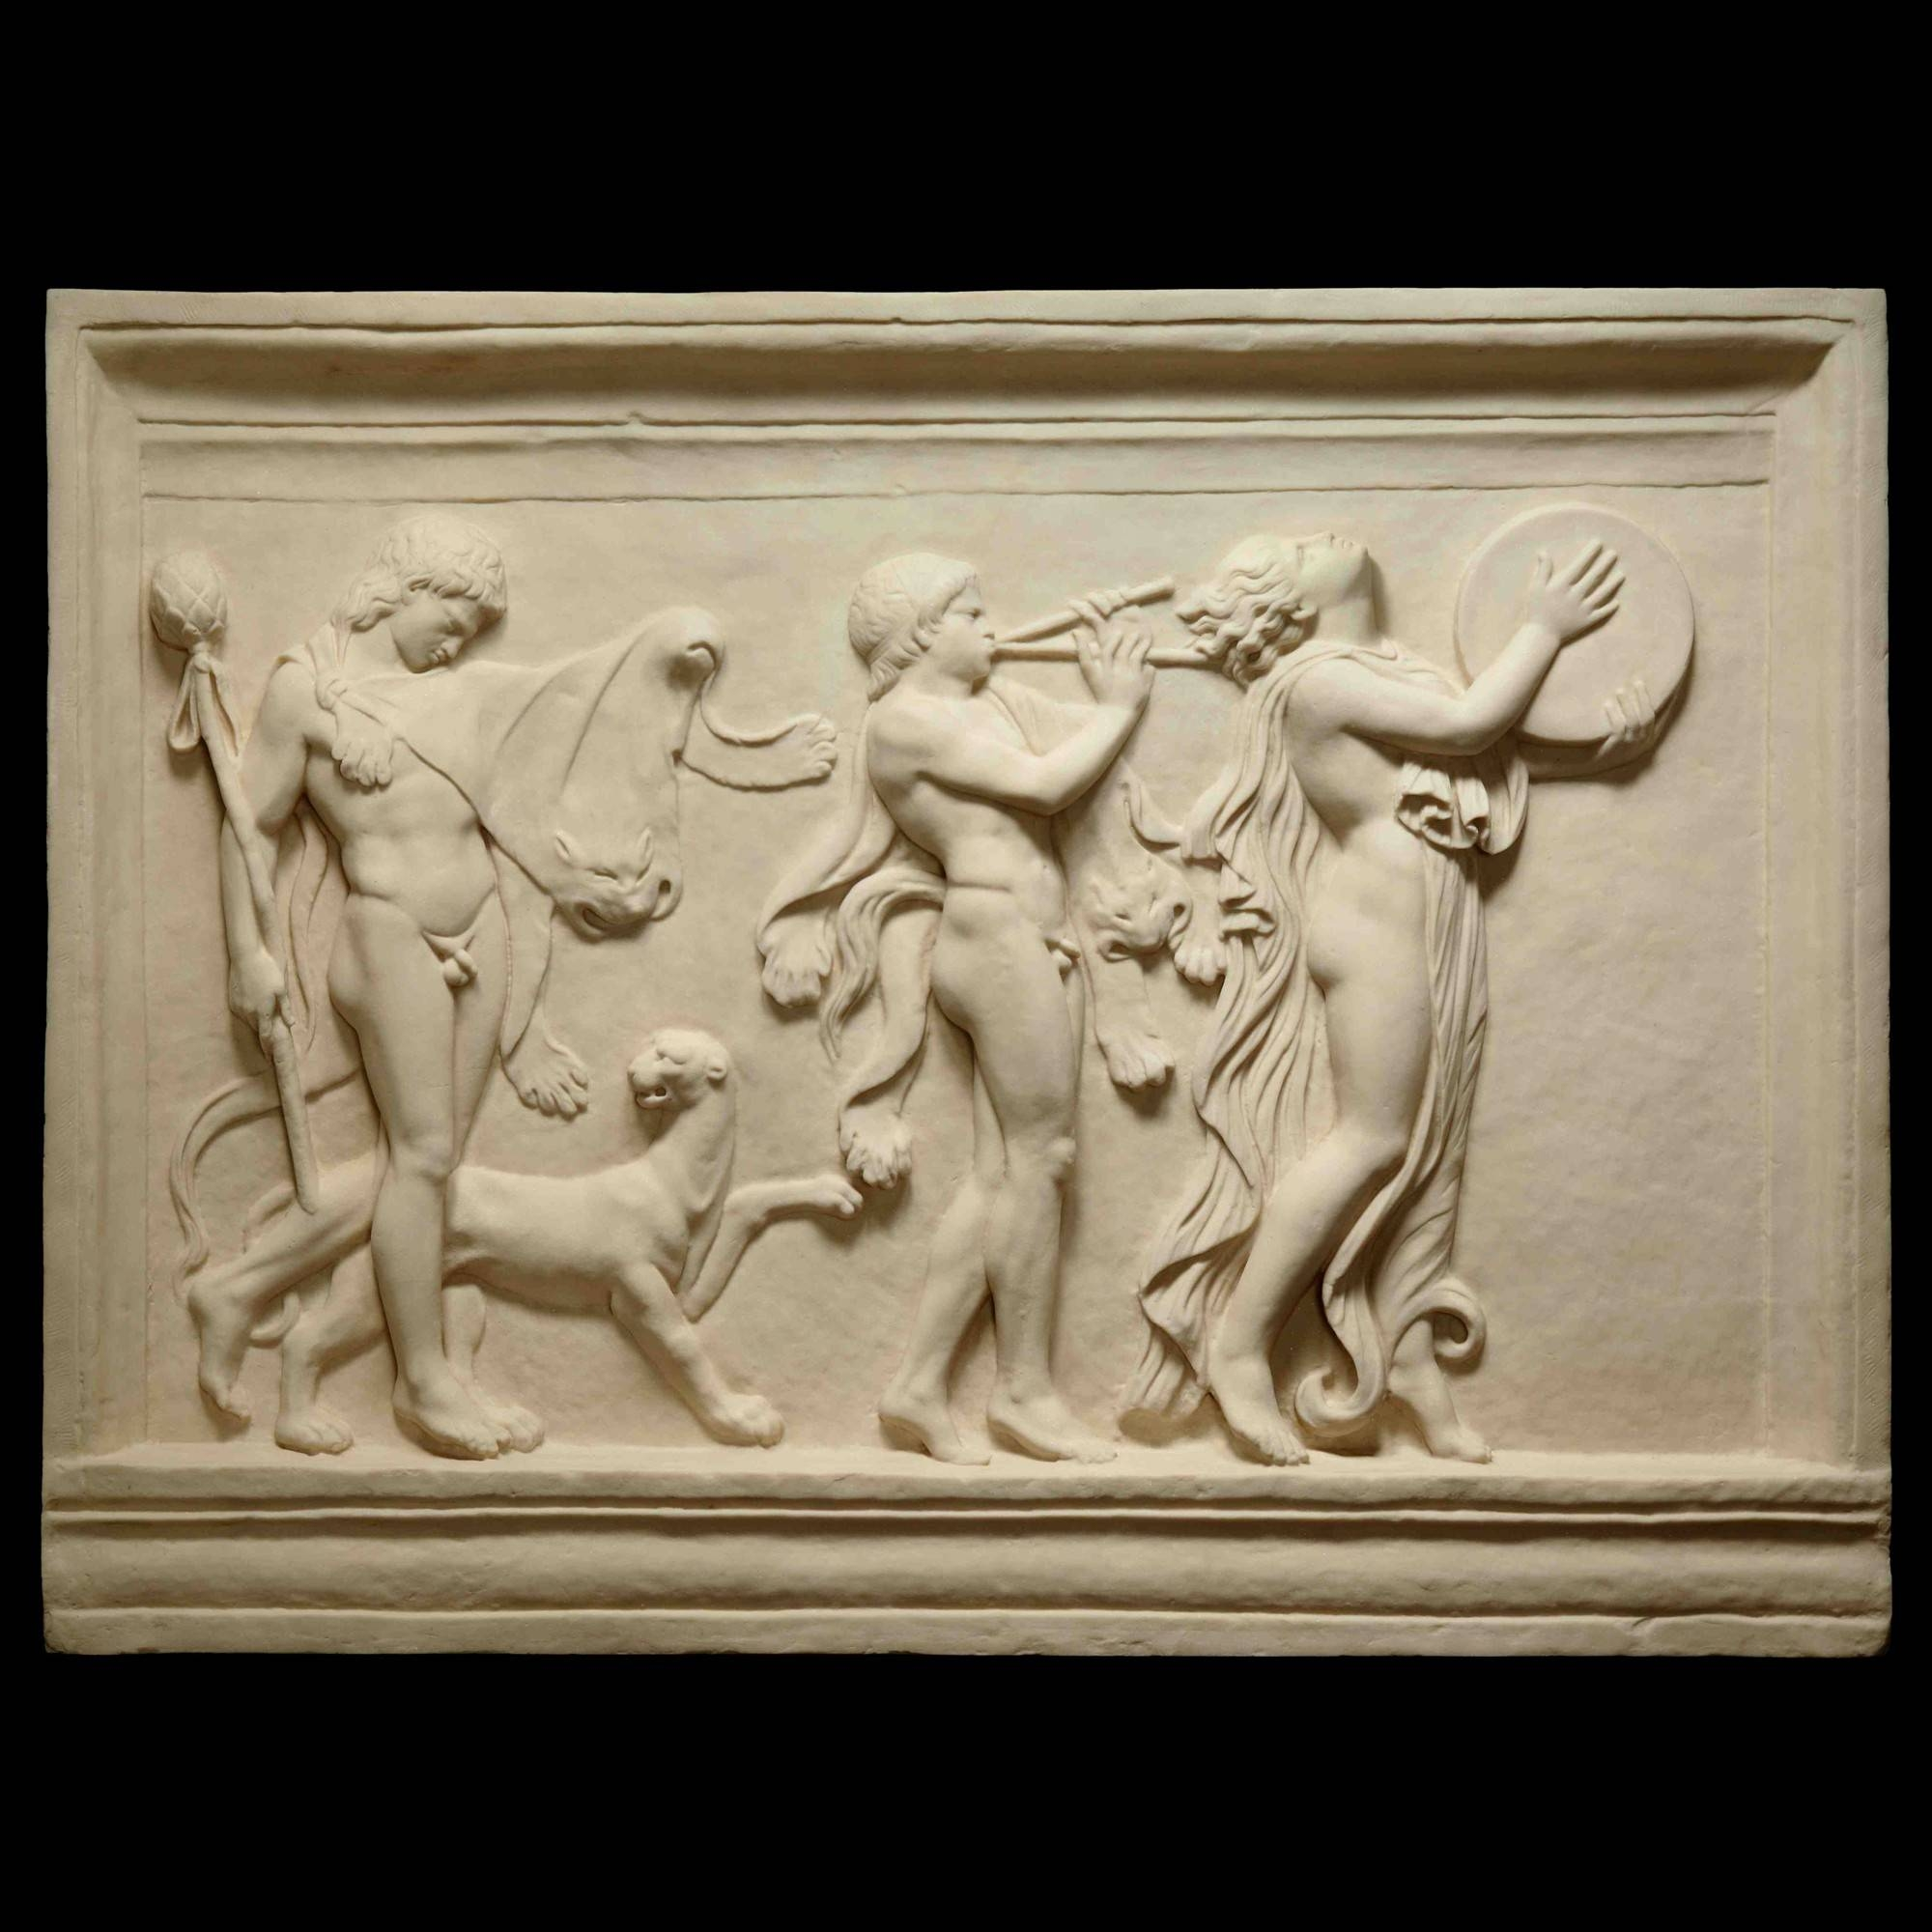 Bacchic Procession – Ancient Greek Marble Wall Relief Plaque | S&s For Most Up To Date Ancient Greek Wall Art (View 9 of 25)